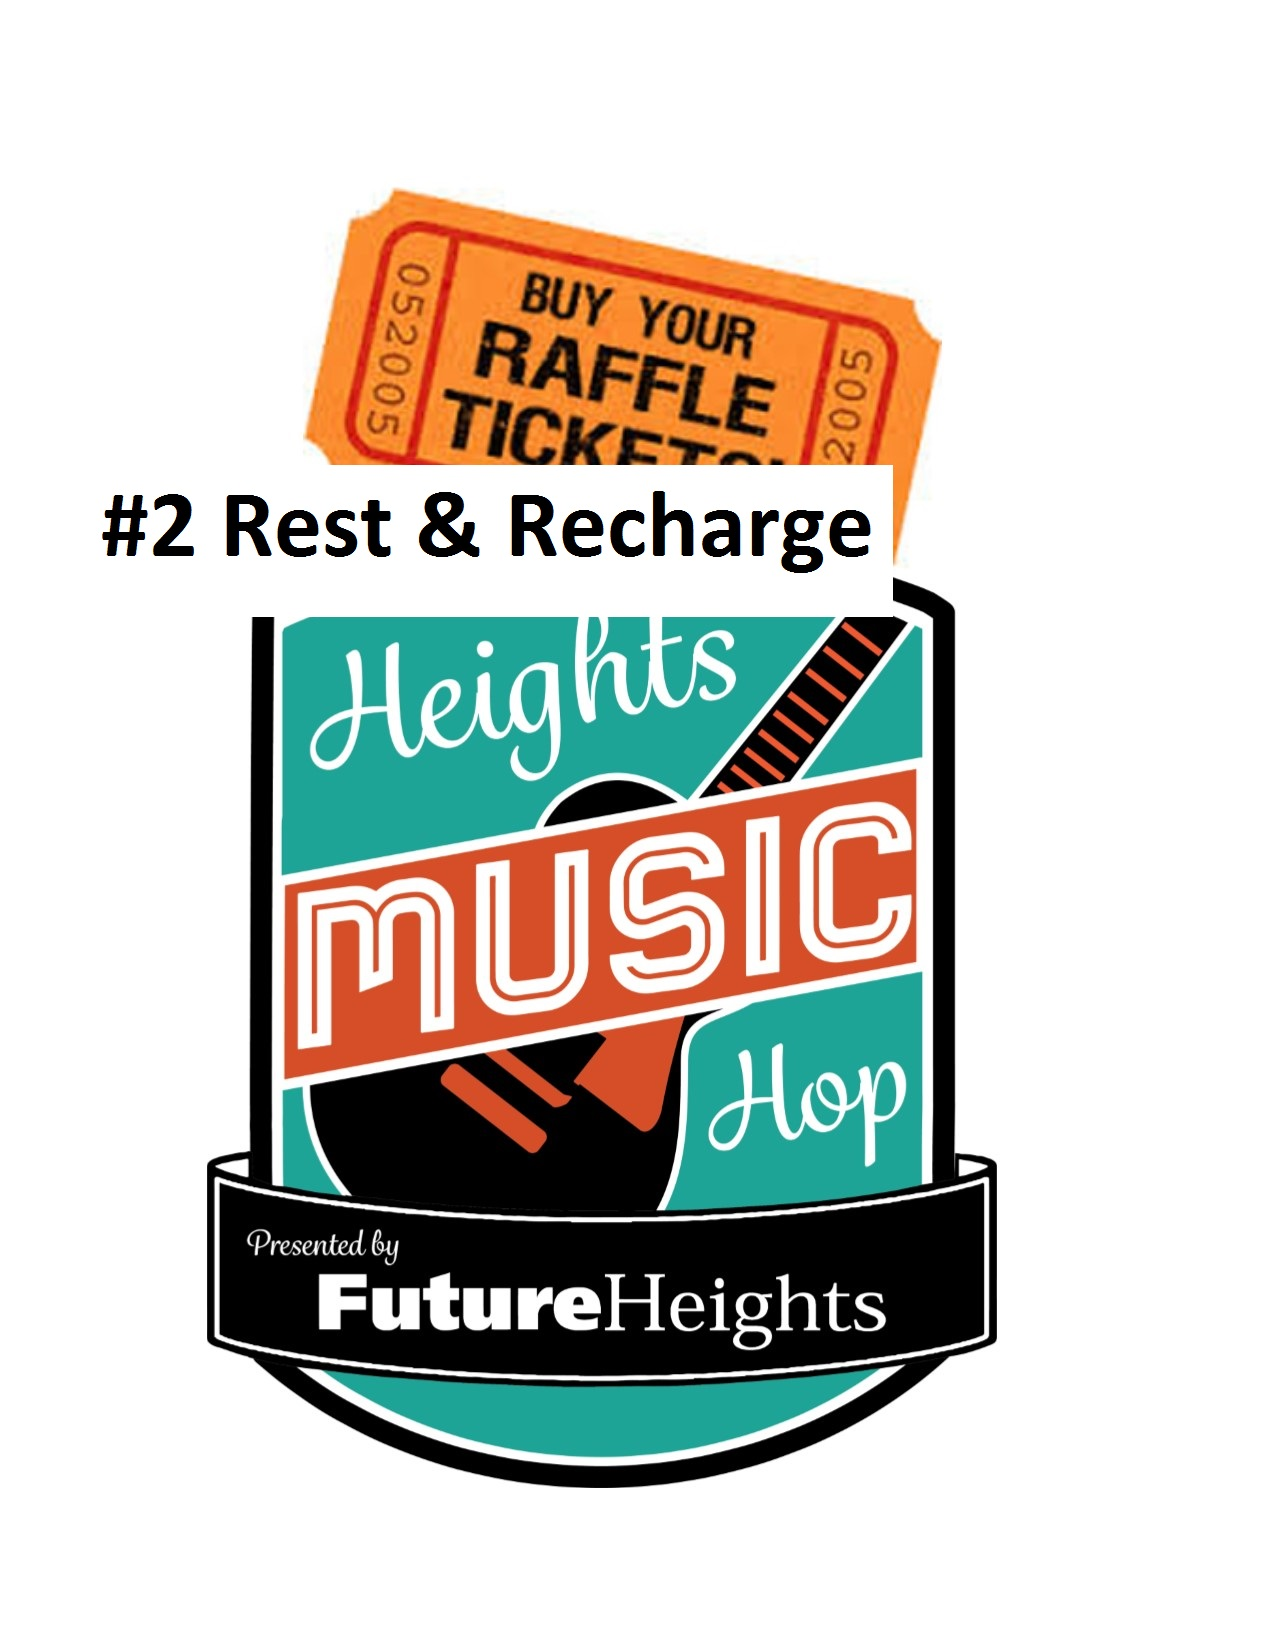 #2 Rest & Recharge Package